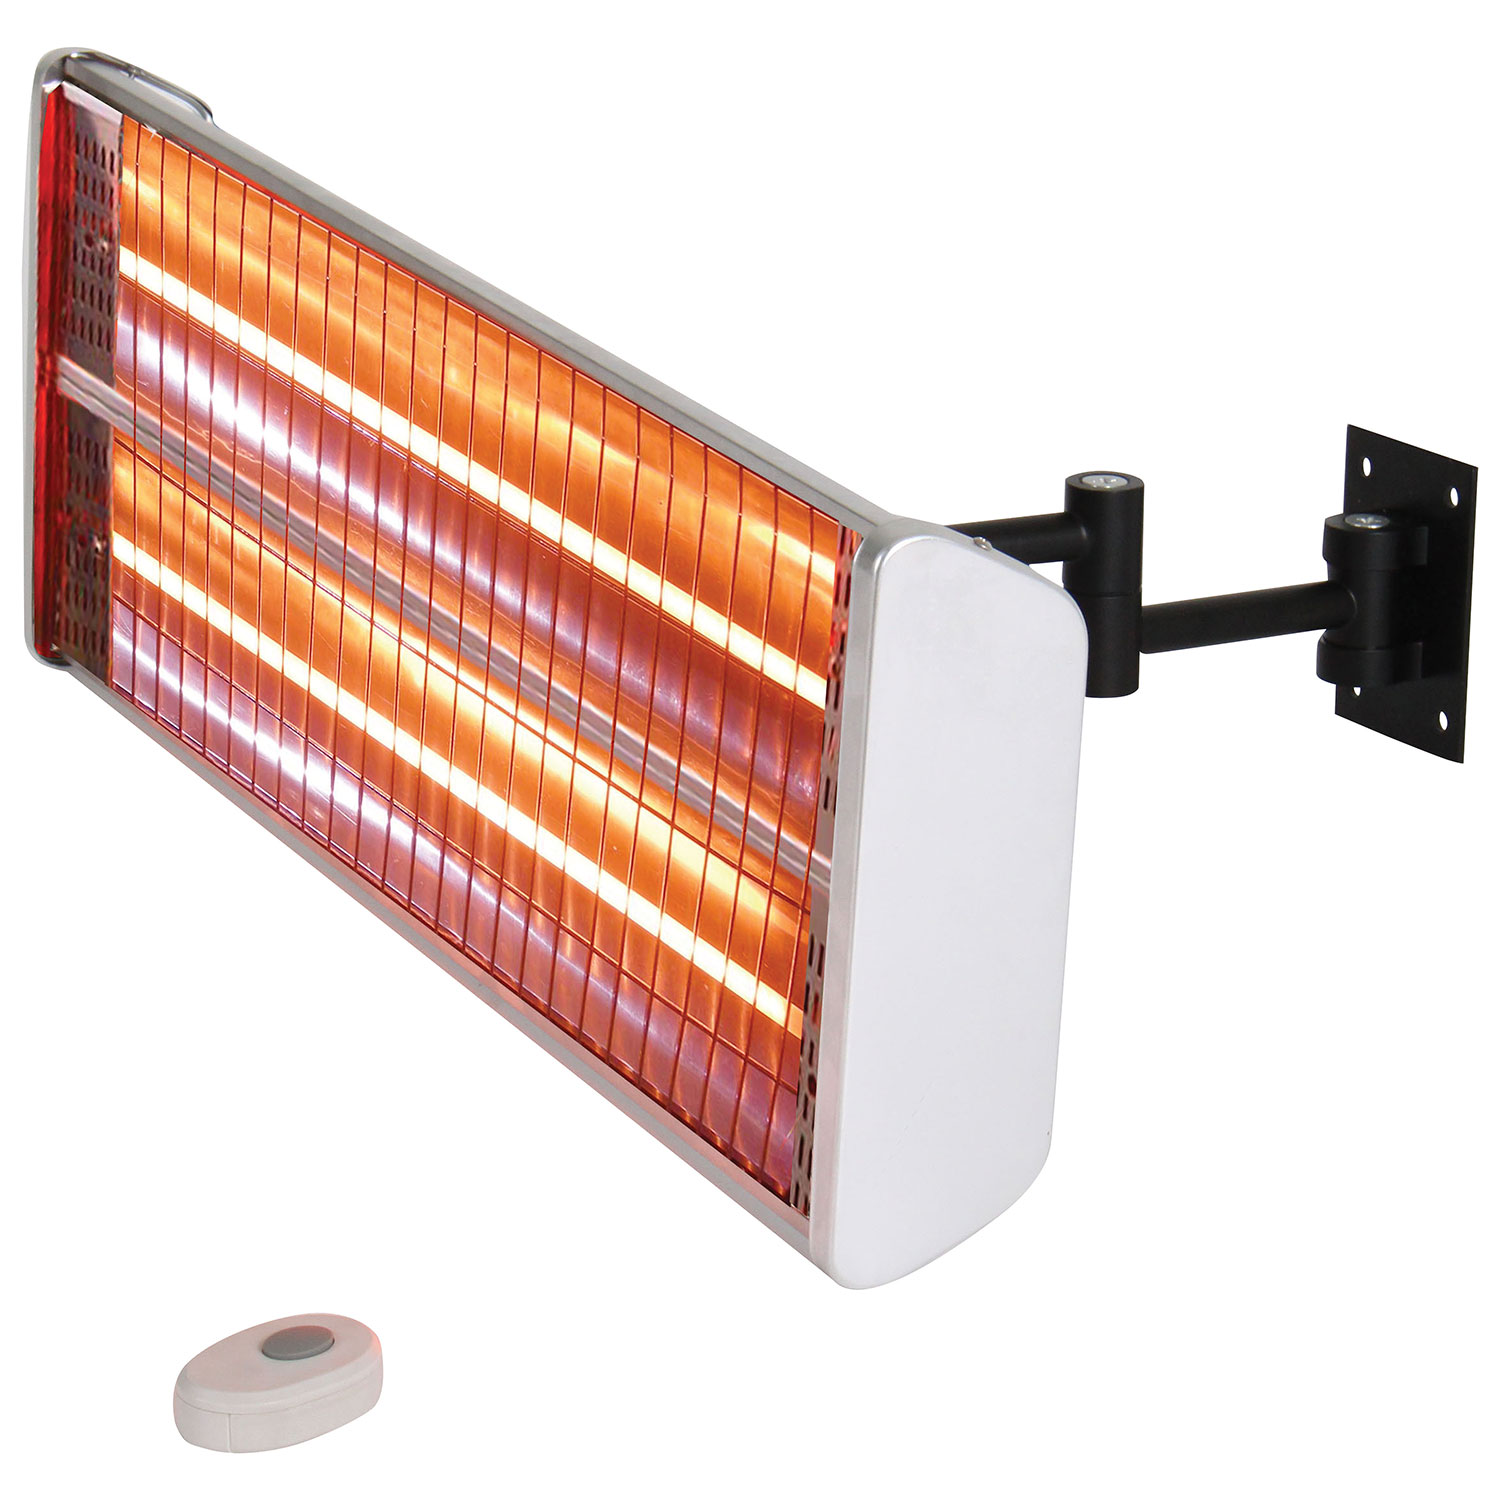 energ outdoor wallmount infrared electric heater btu patio heaters best buy canada